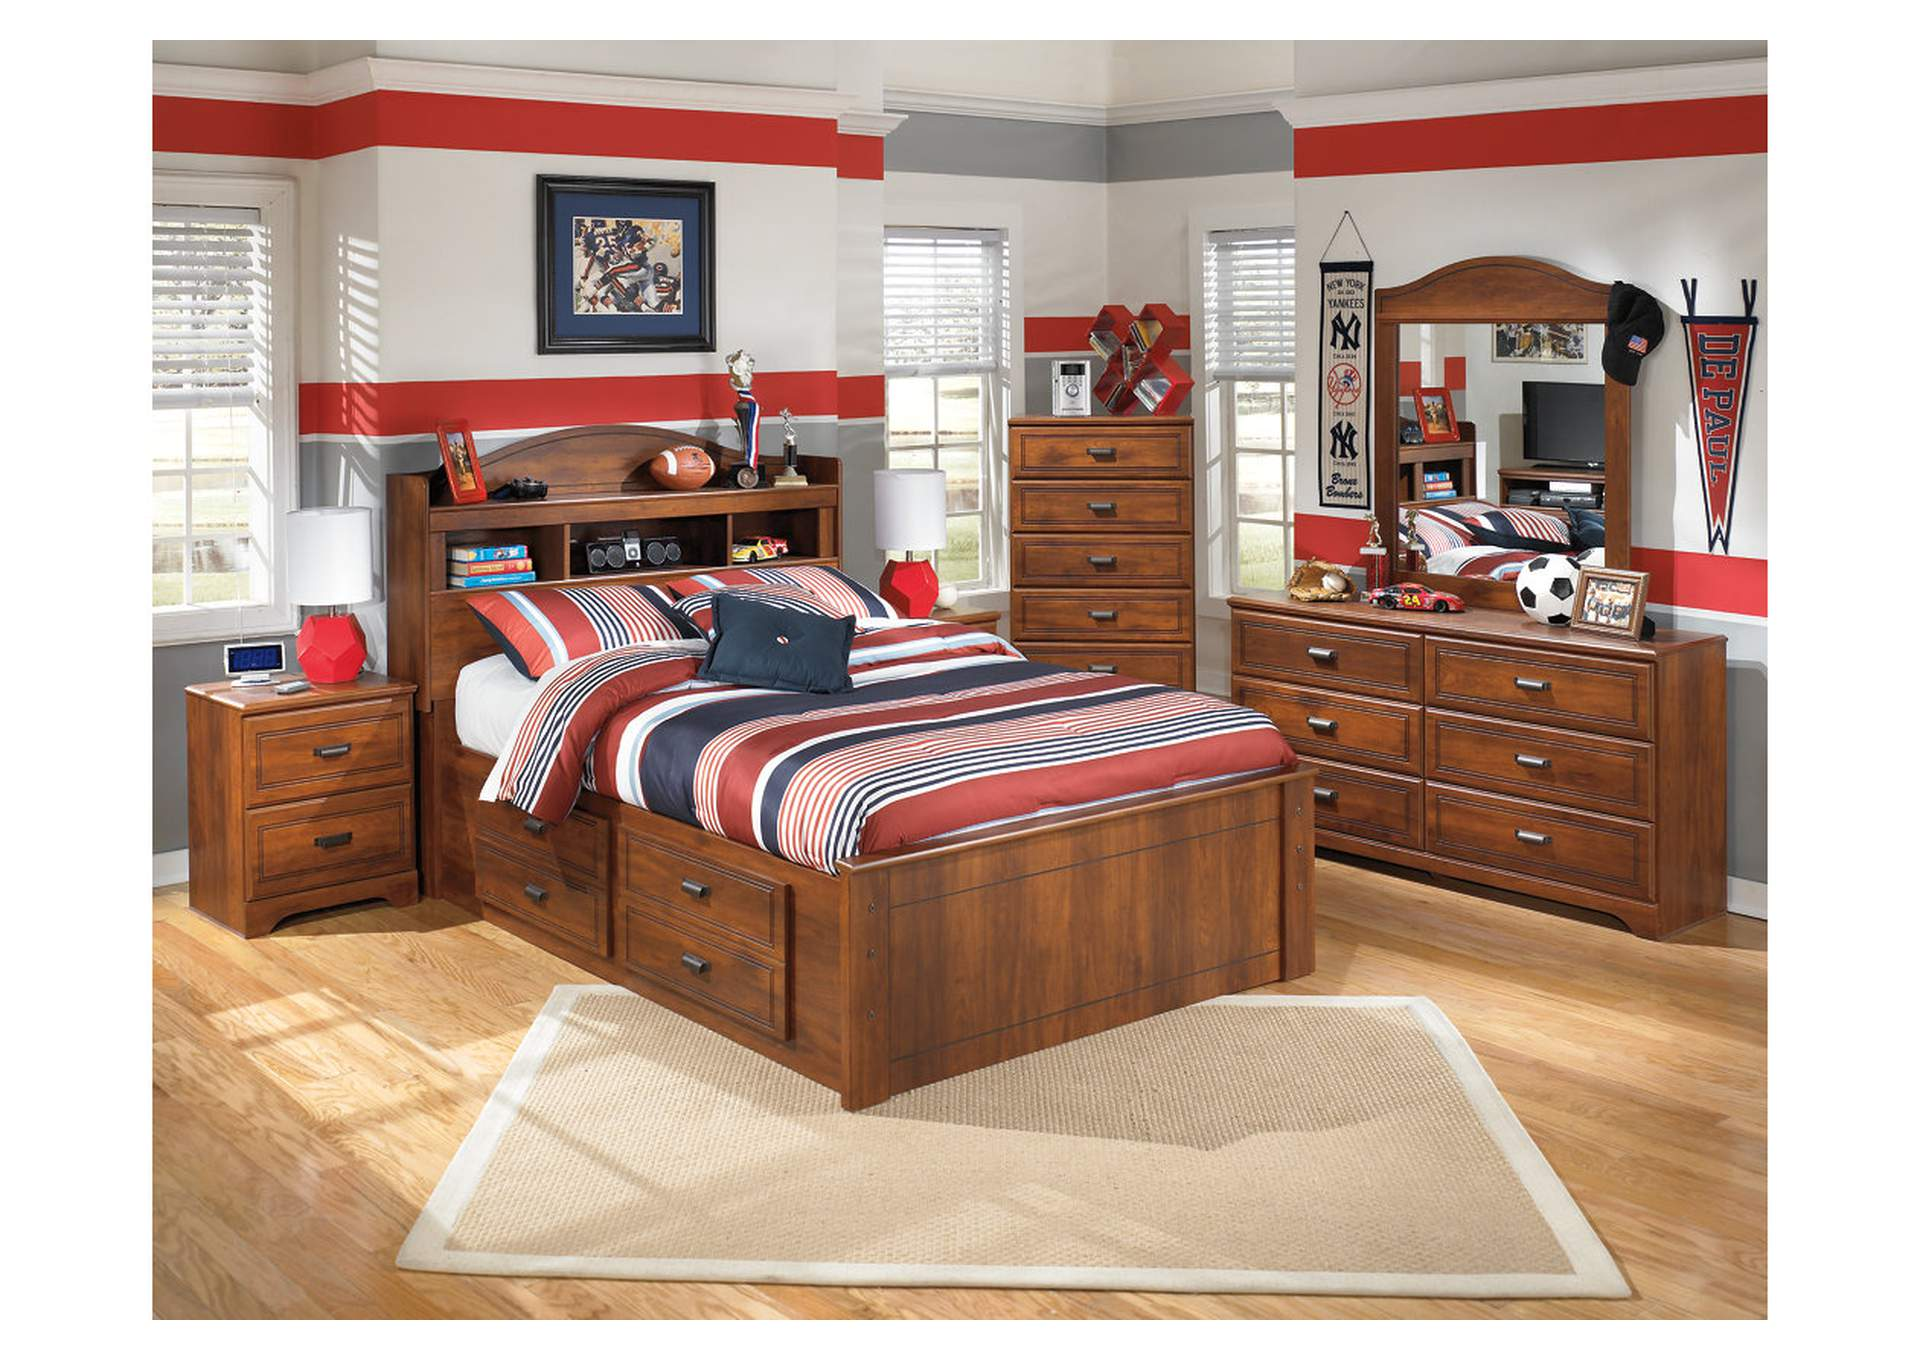 Barchan Full Bookcase Storage Bed w/Dresser, Mirror & Drawer Chest,Signature Design By Ashley